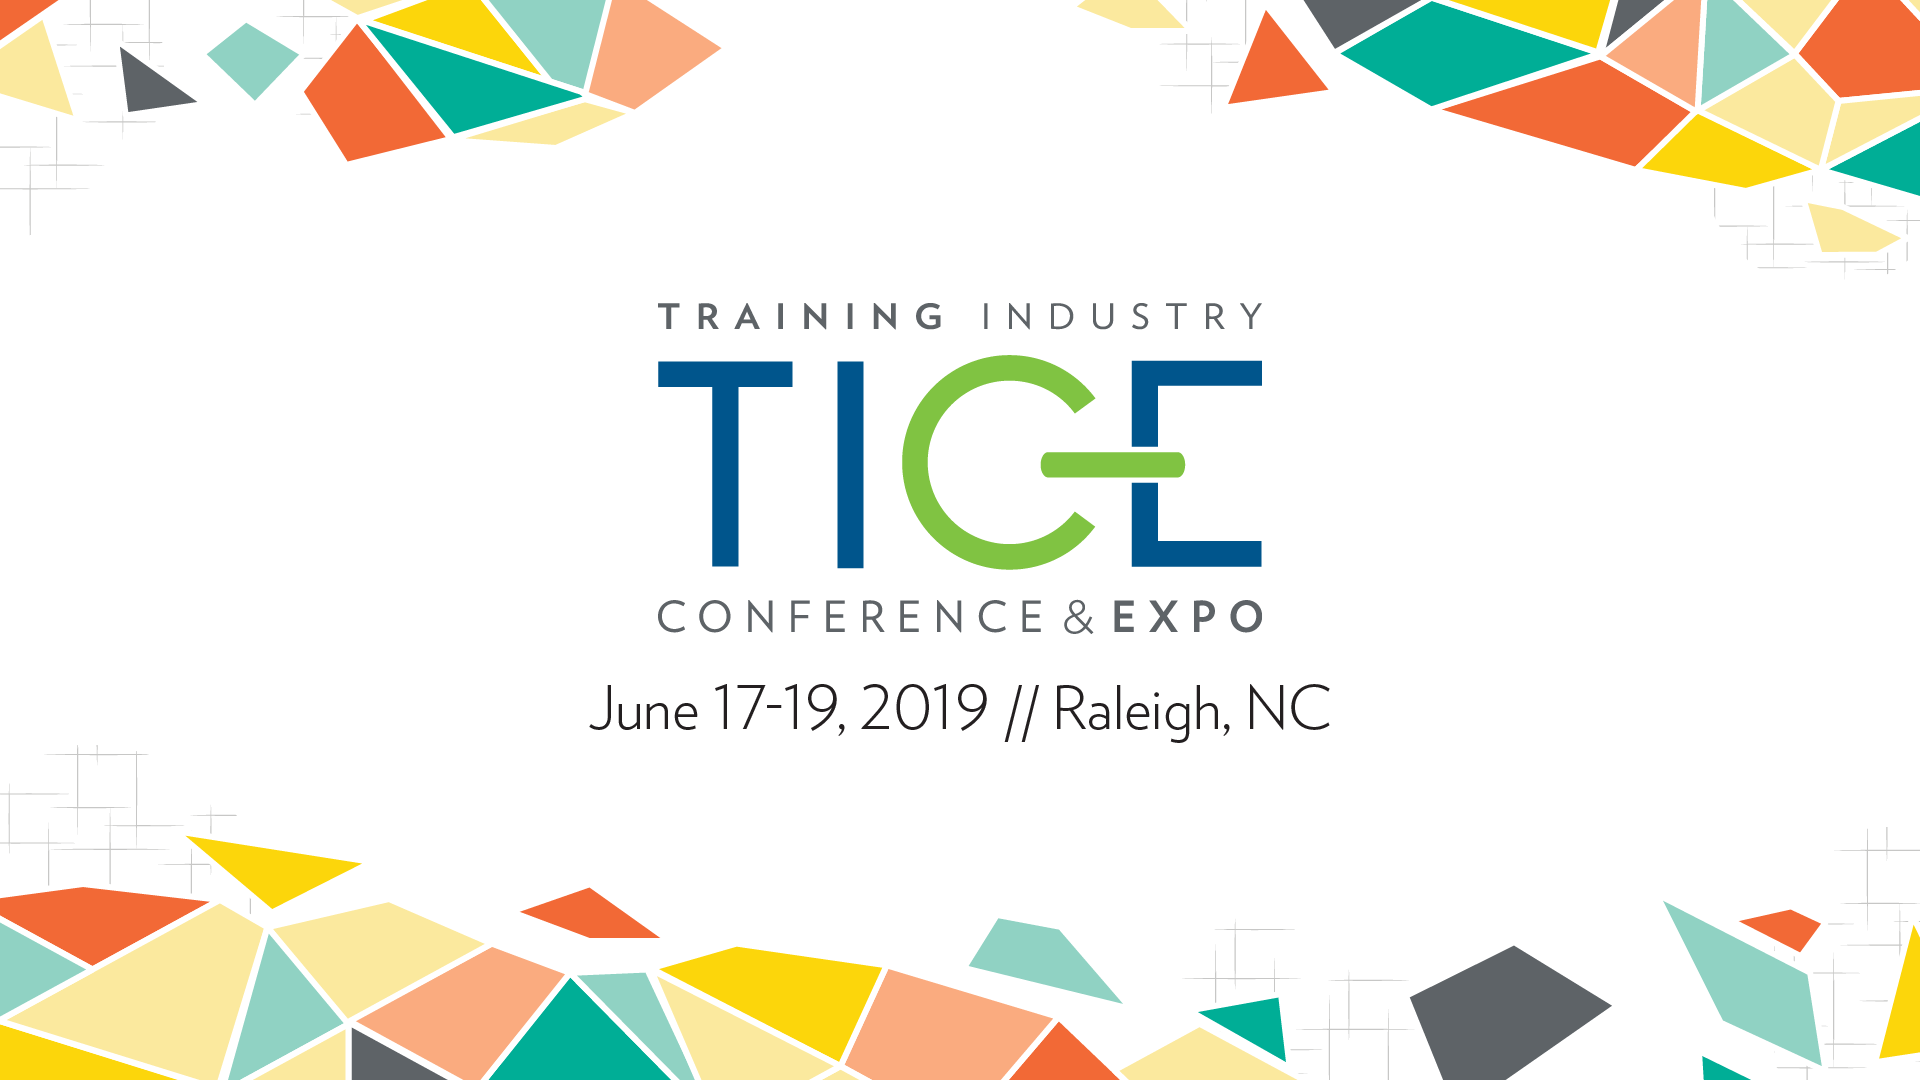 Tice Conference 2019